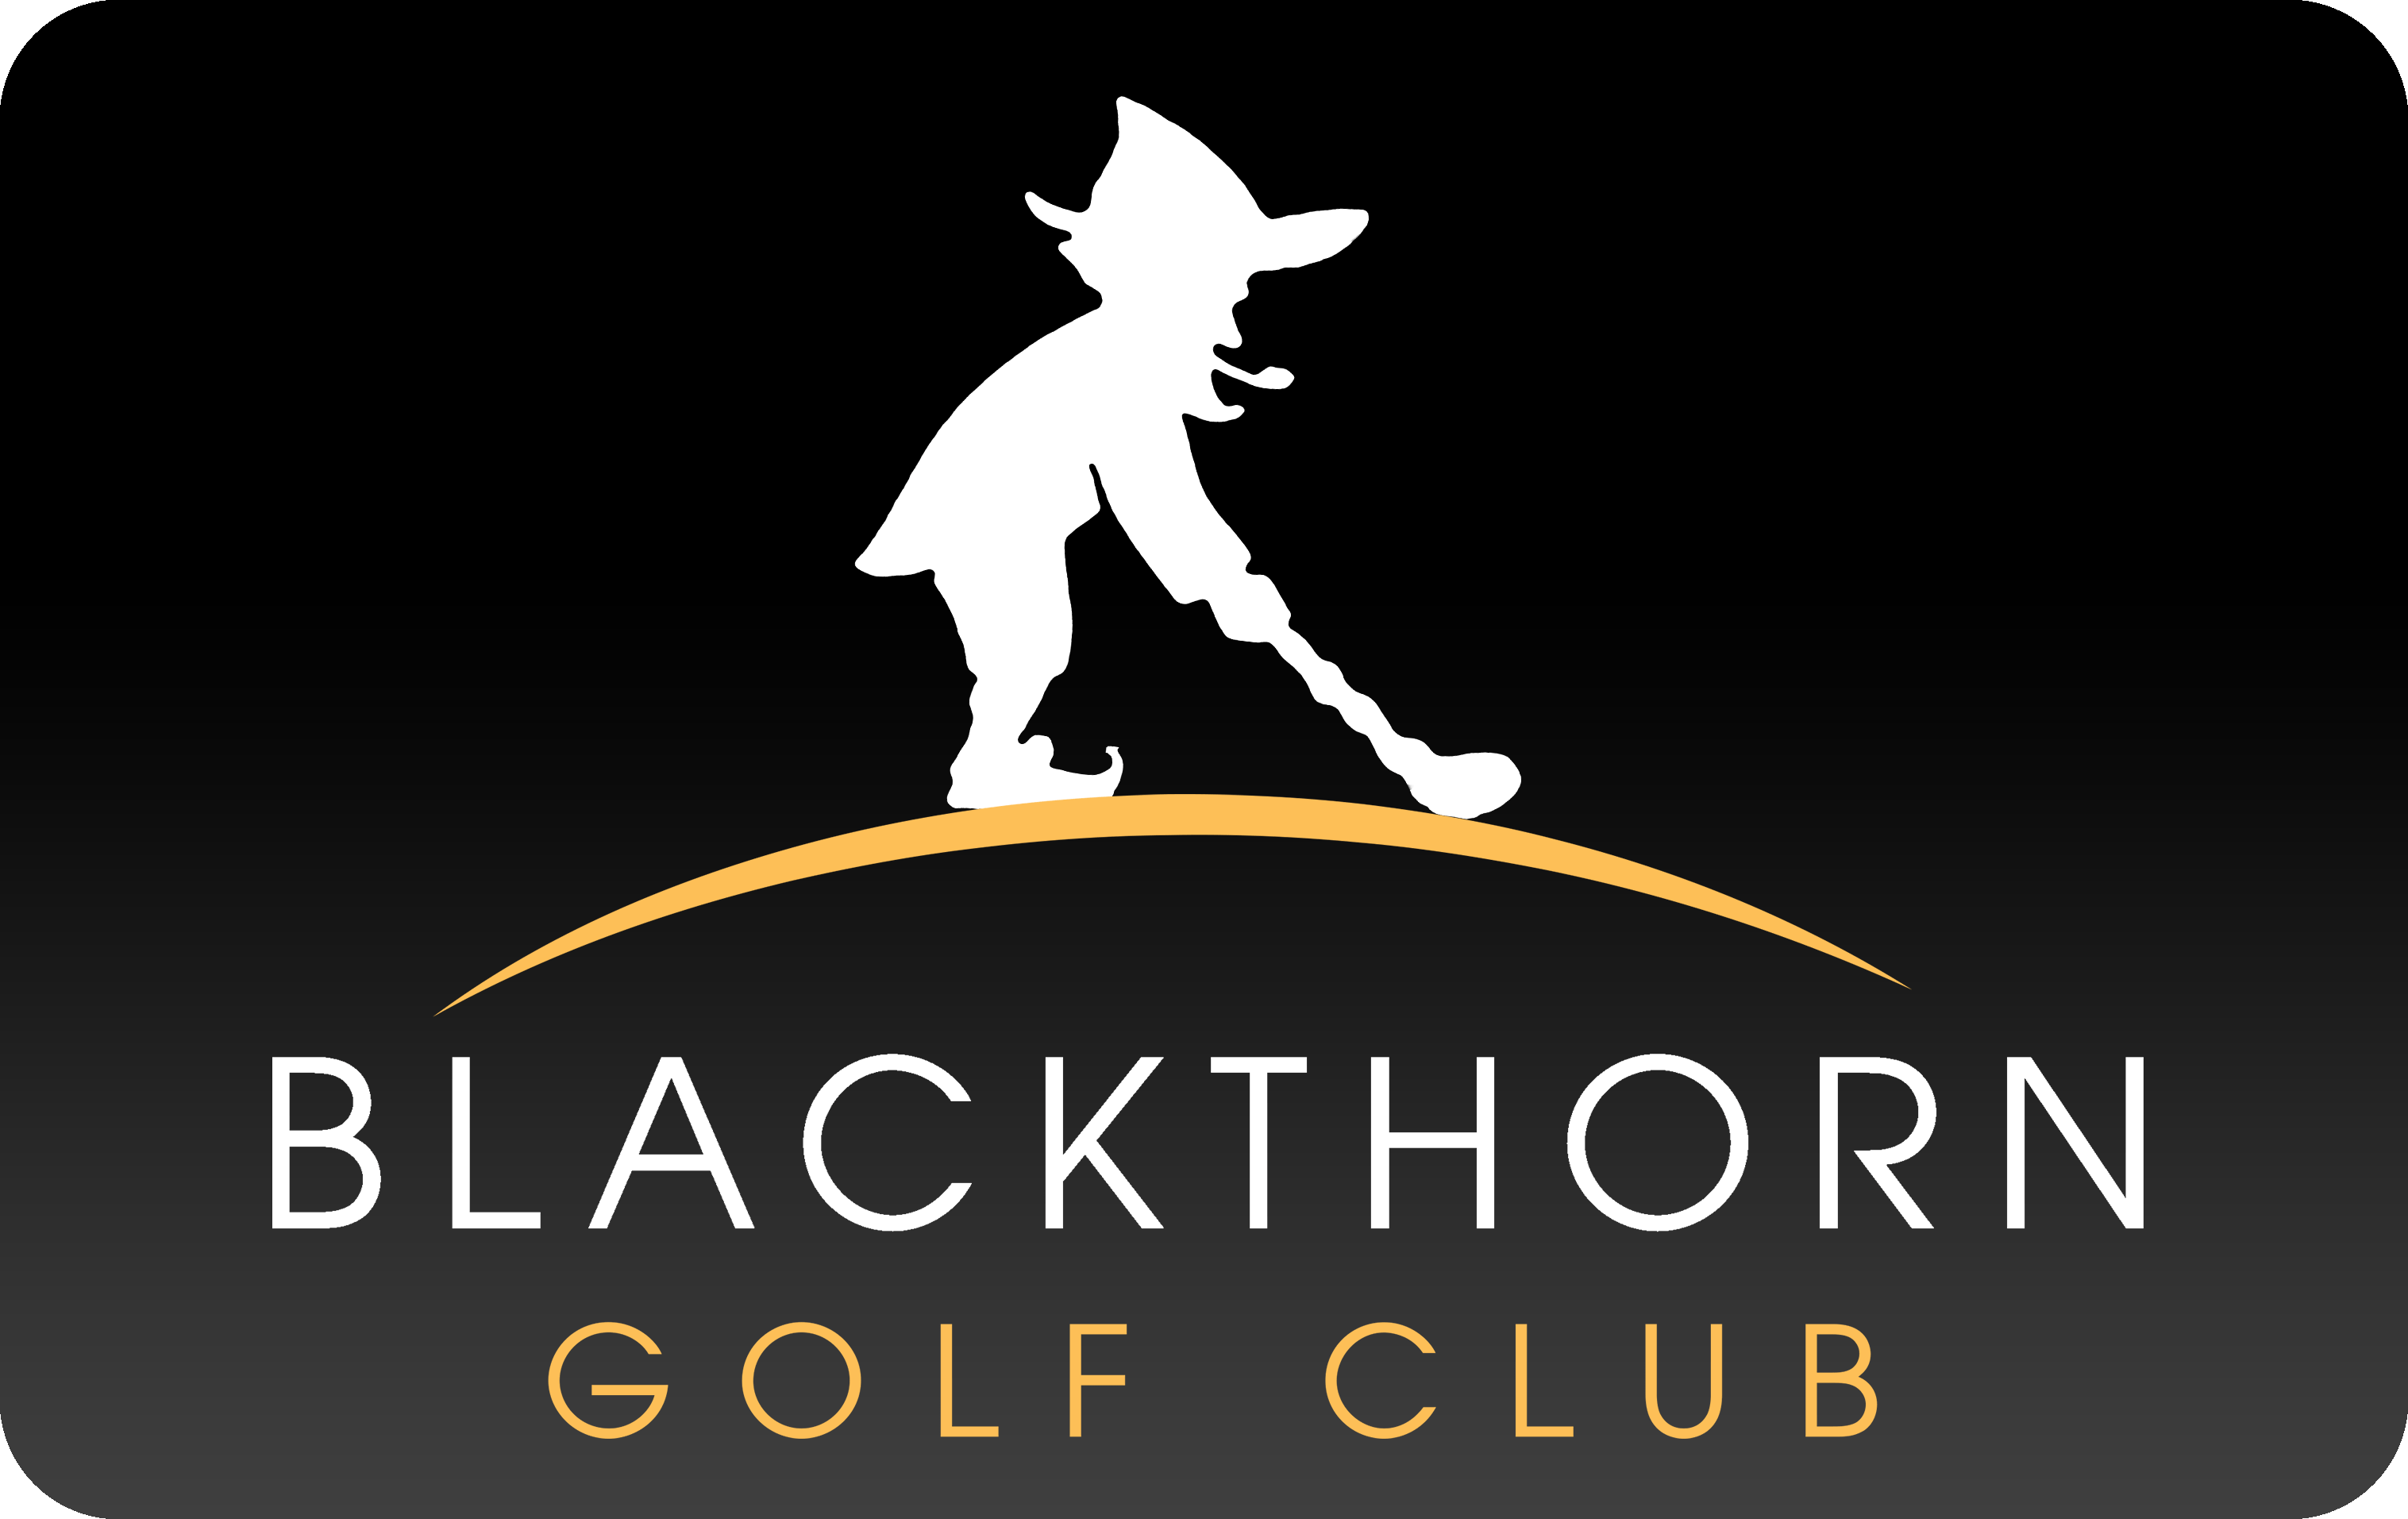 Blackthron Golf Club